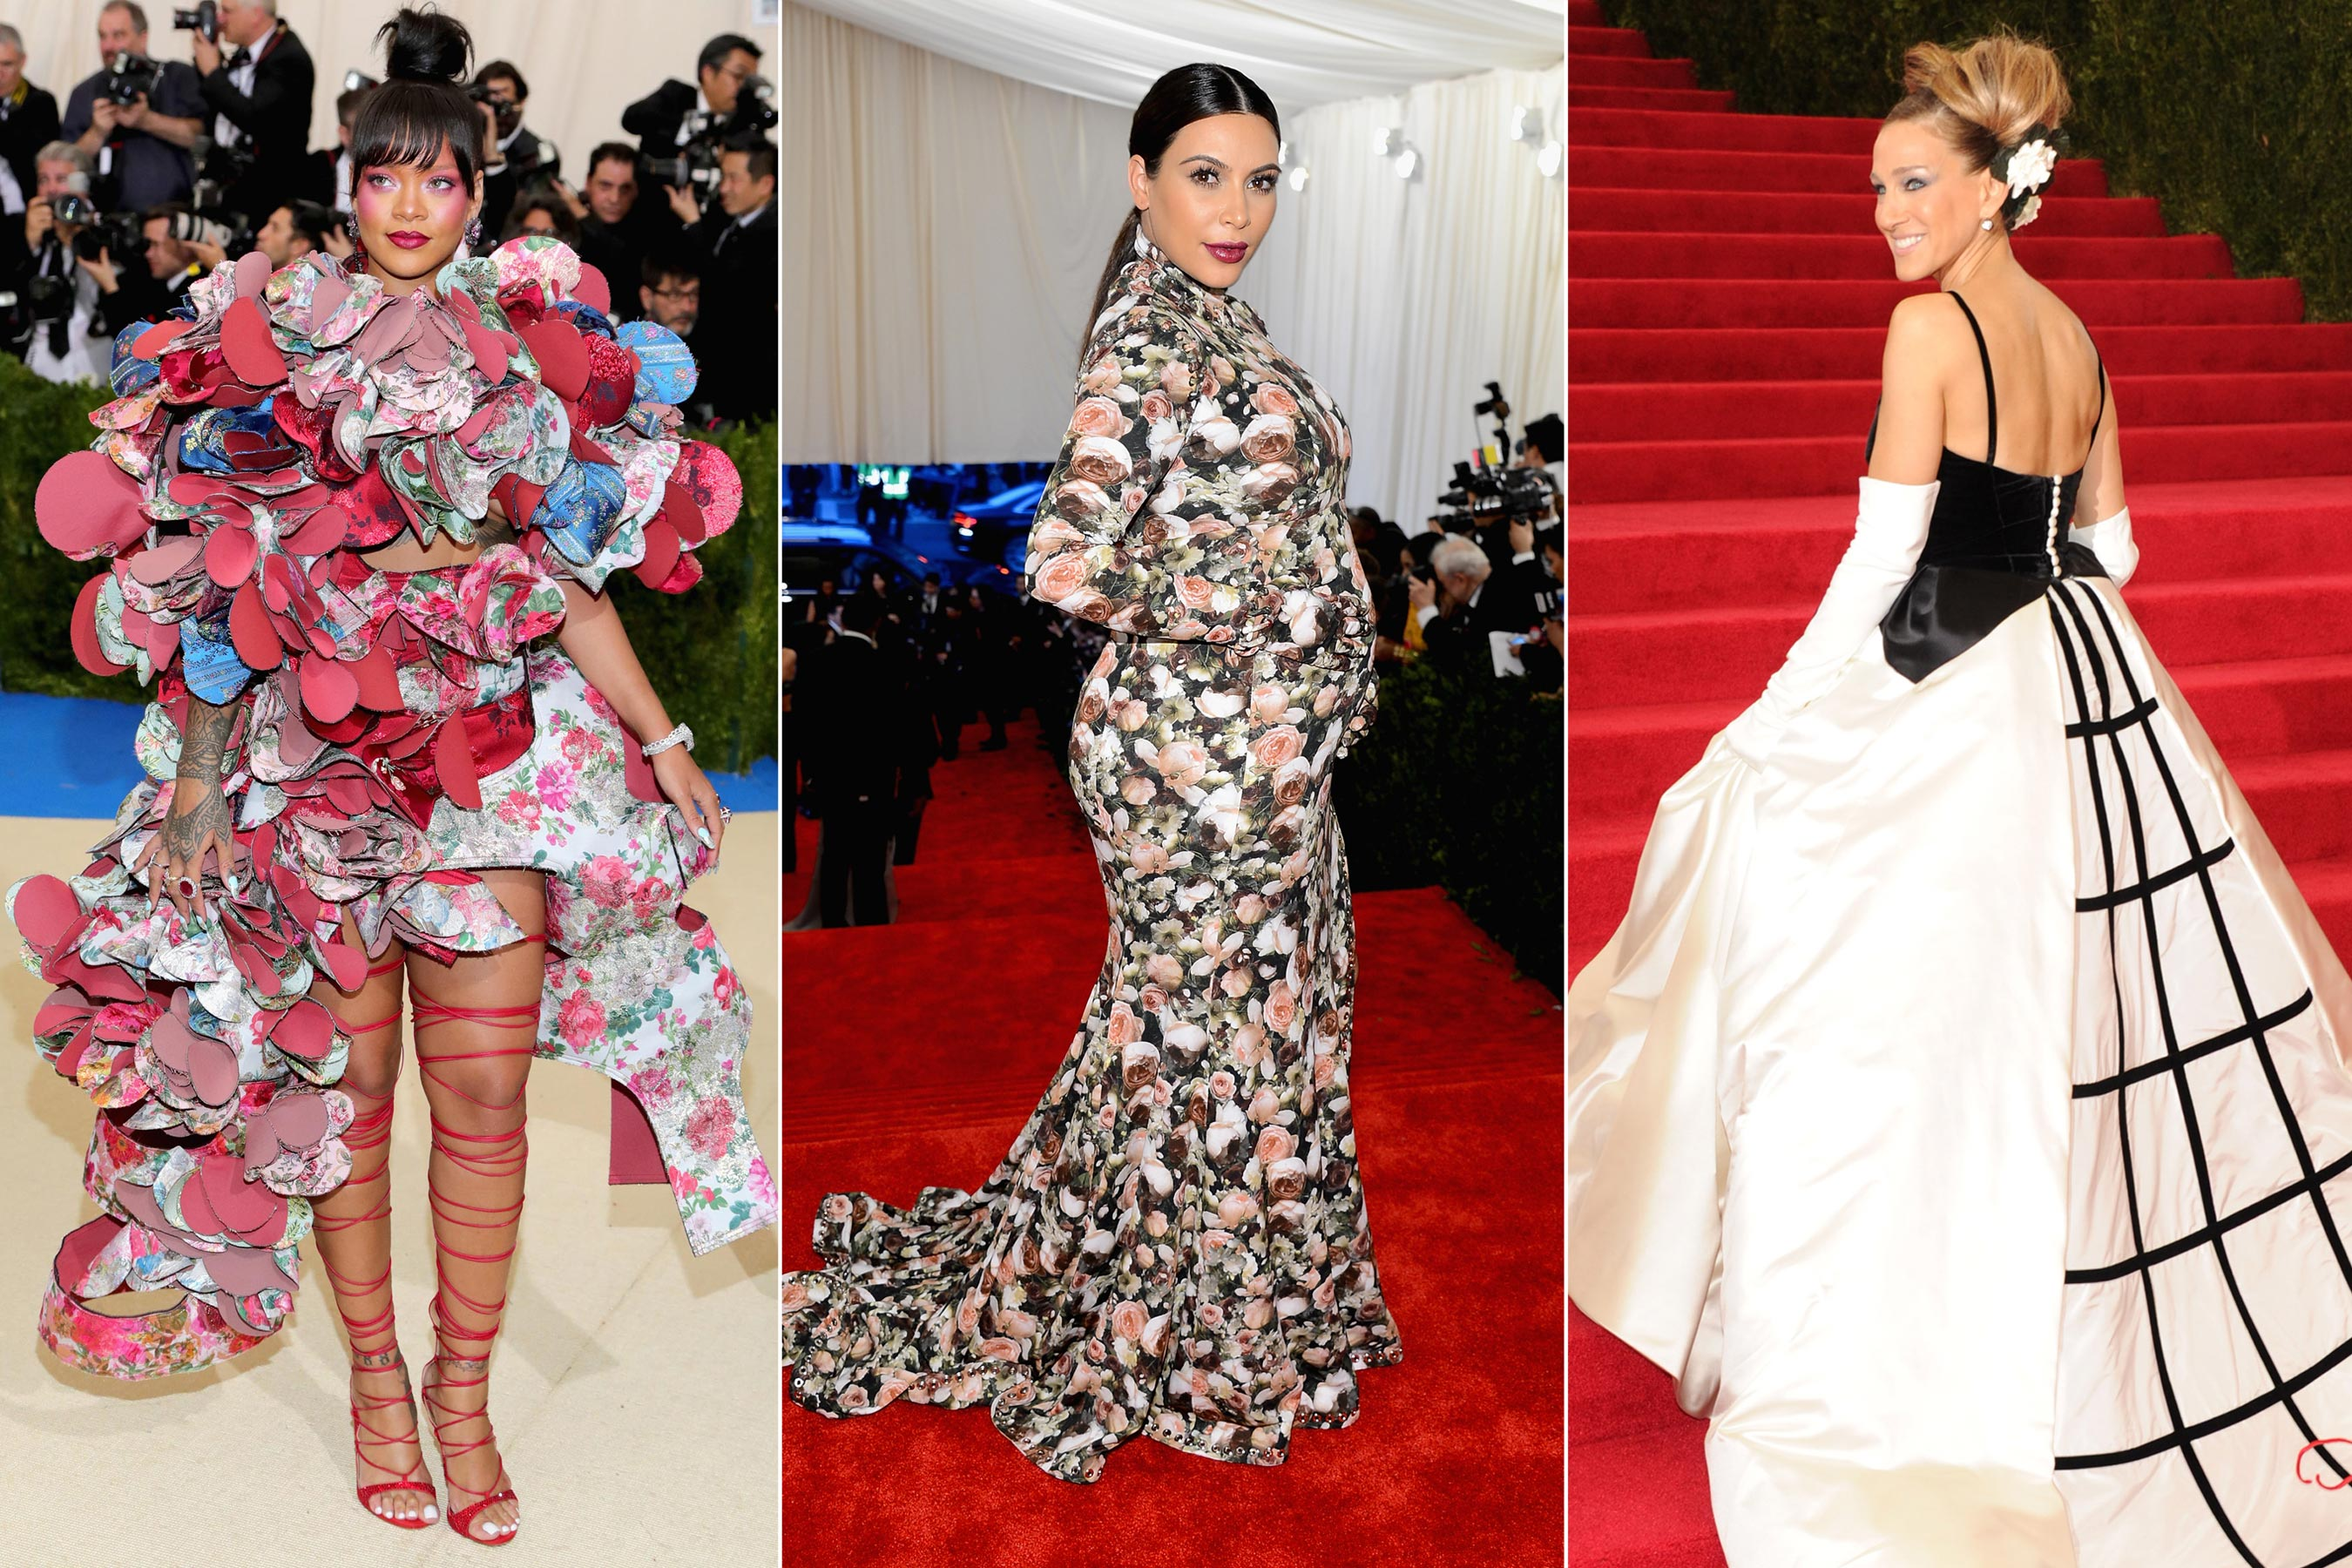 Met Gala fashion: Best and worst theme looks